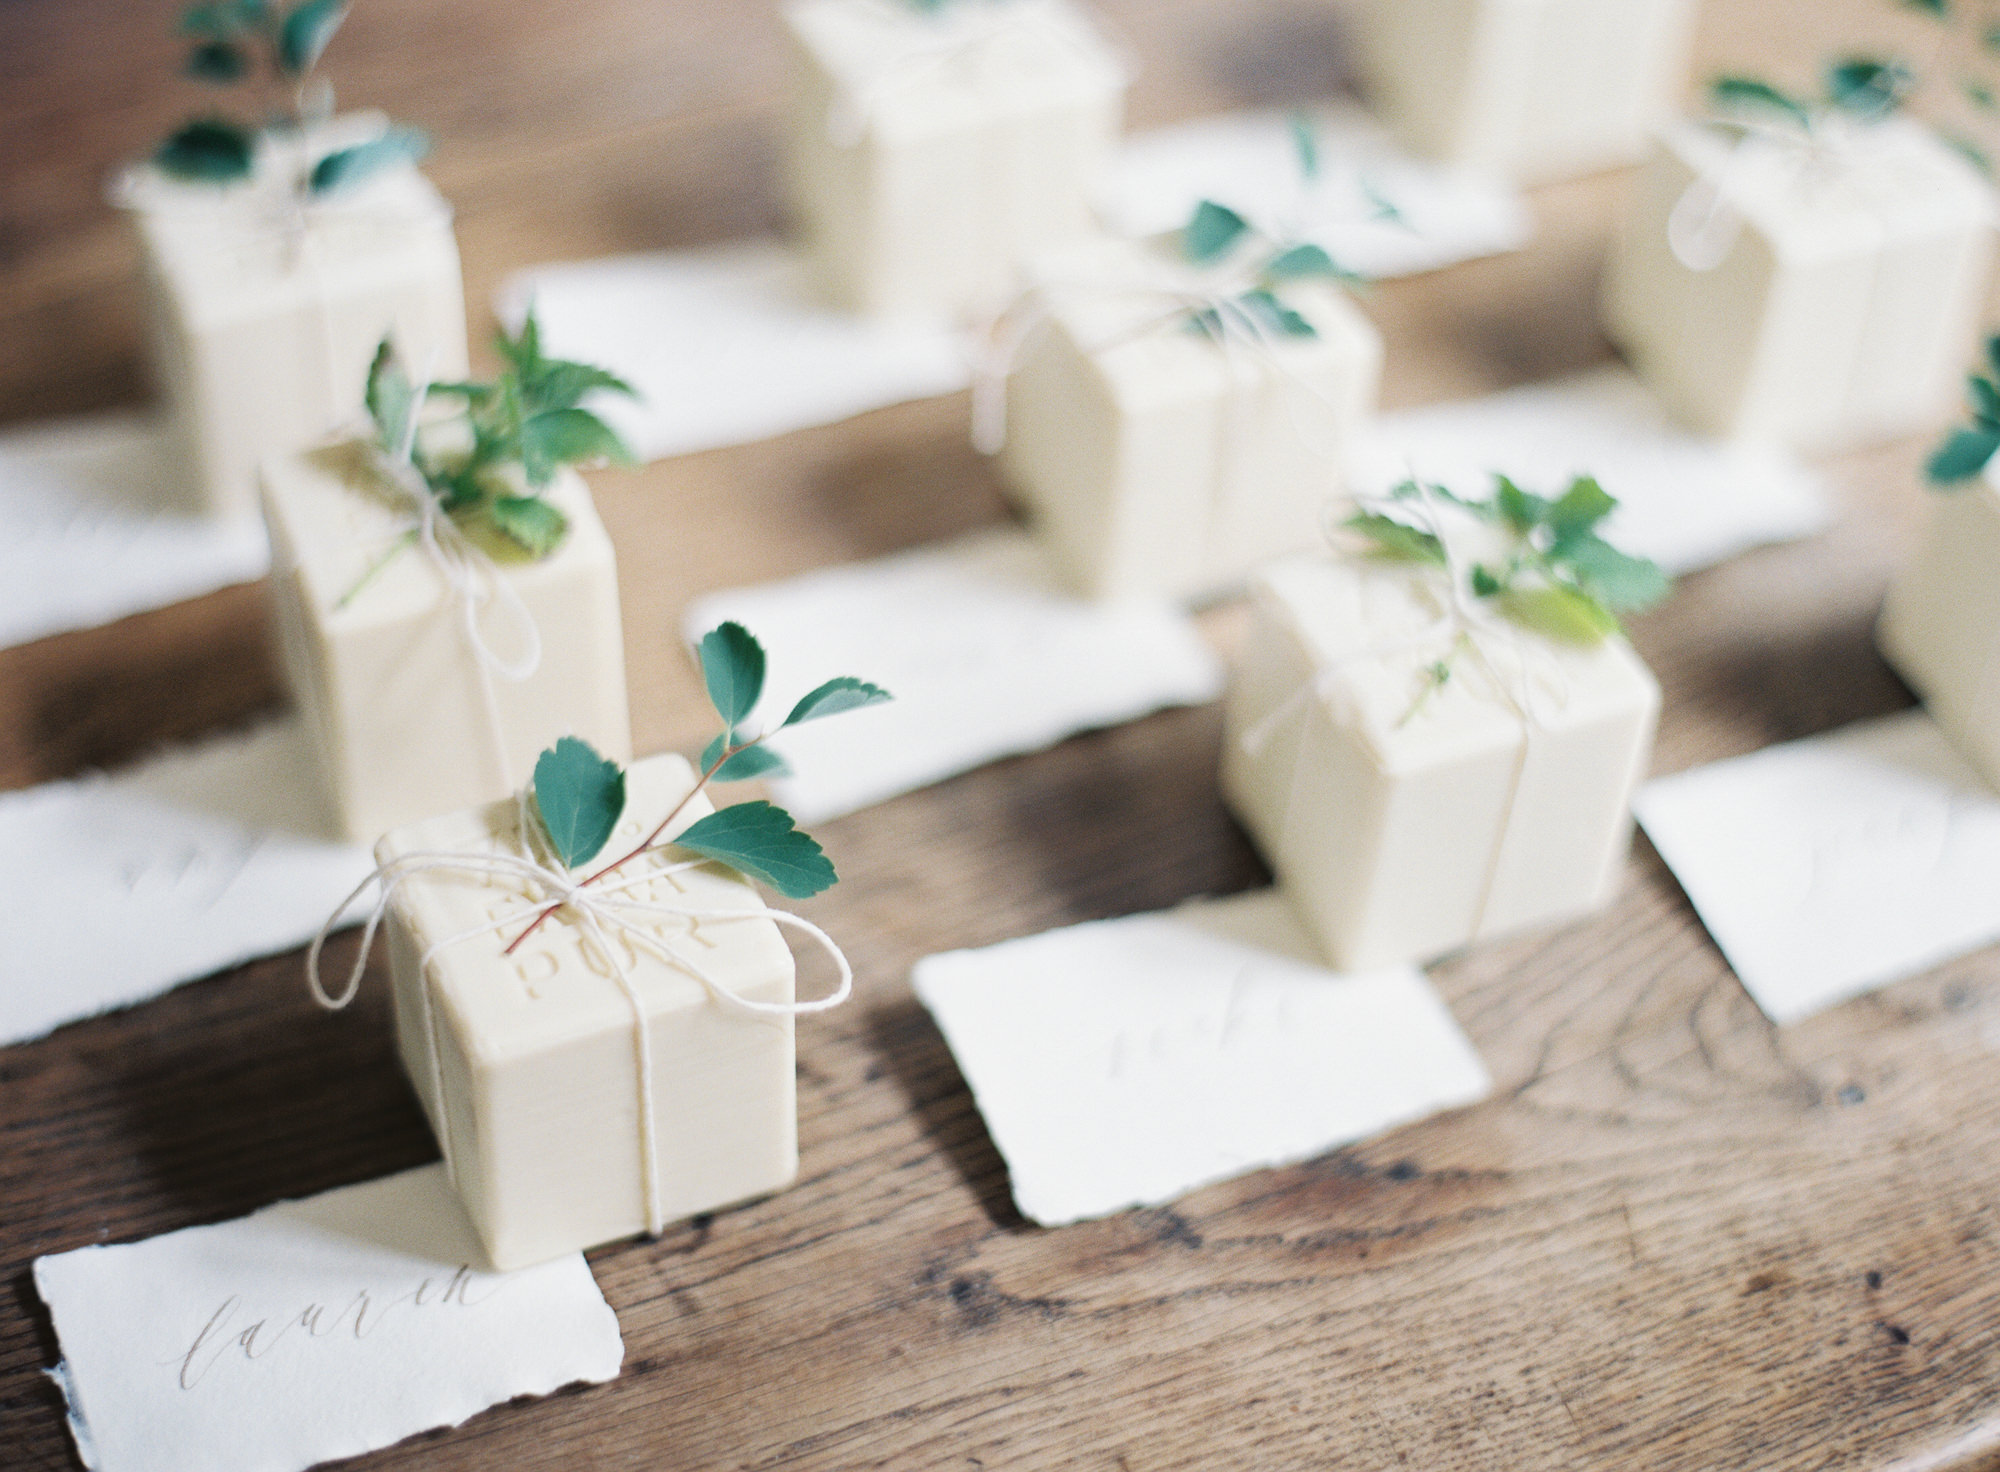 Organic soap with herbs wedding gifts Jen Huang of Los Angeles wedding photographer